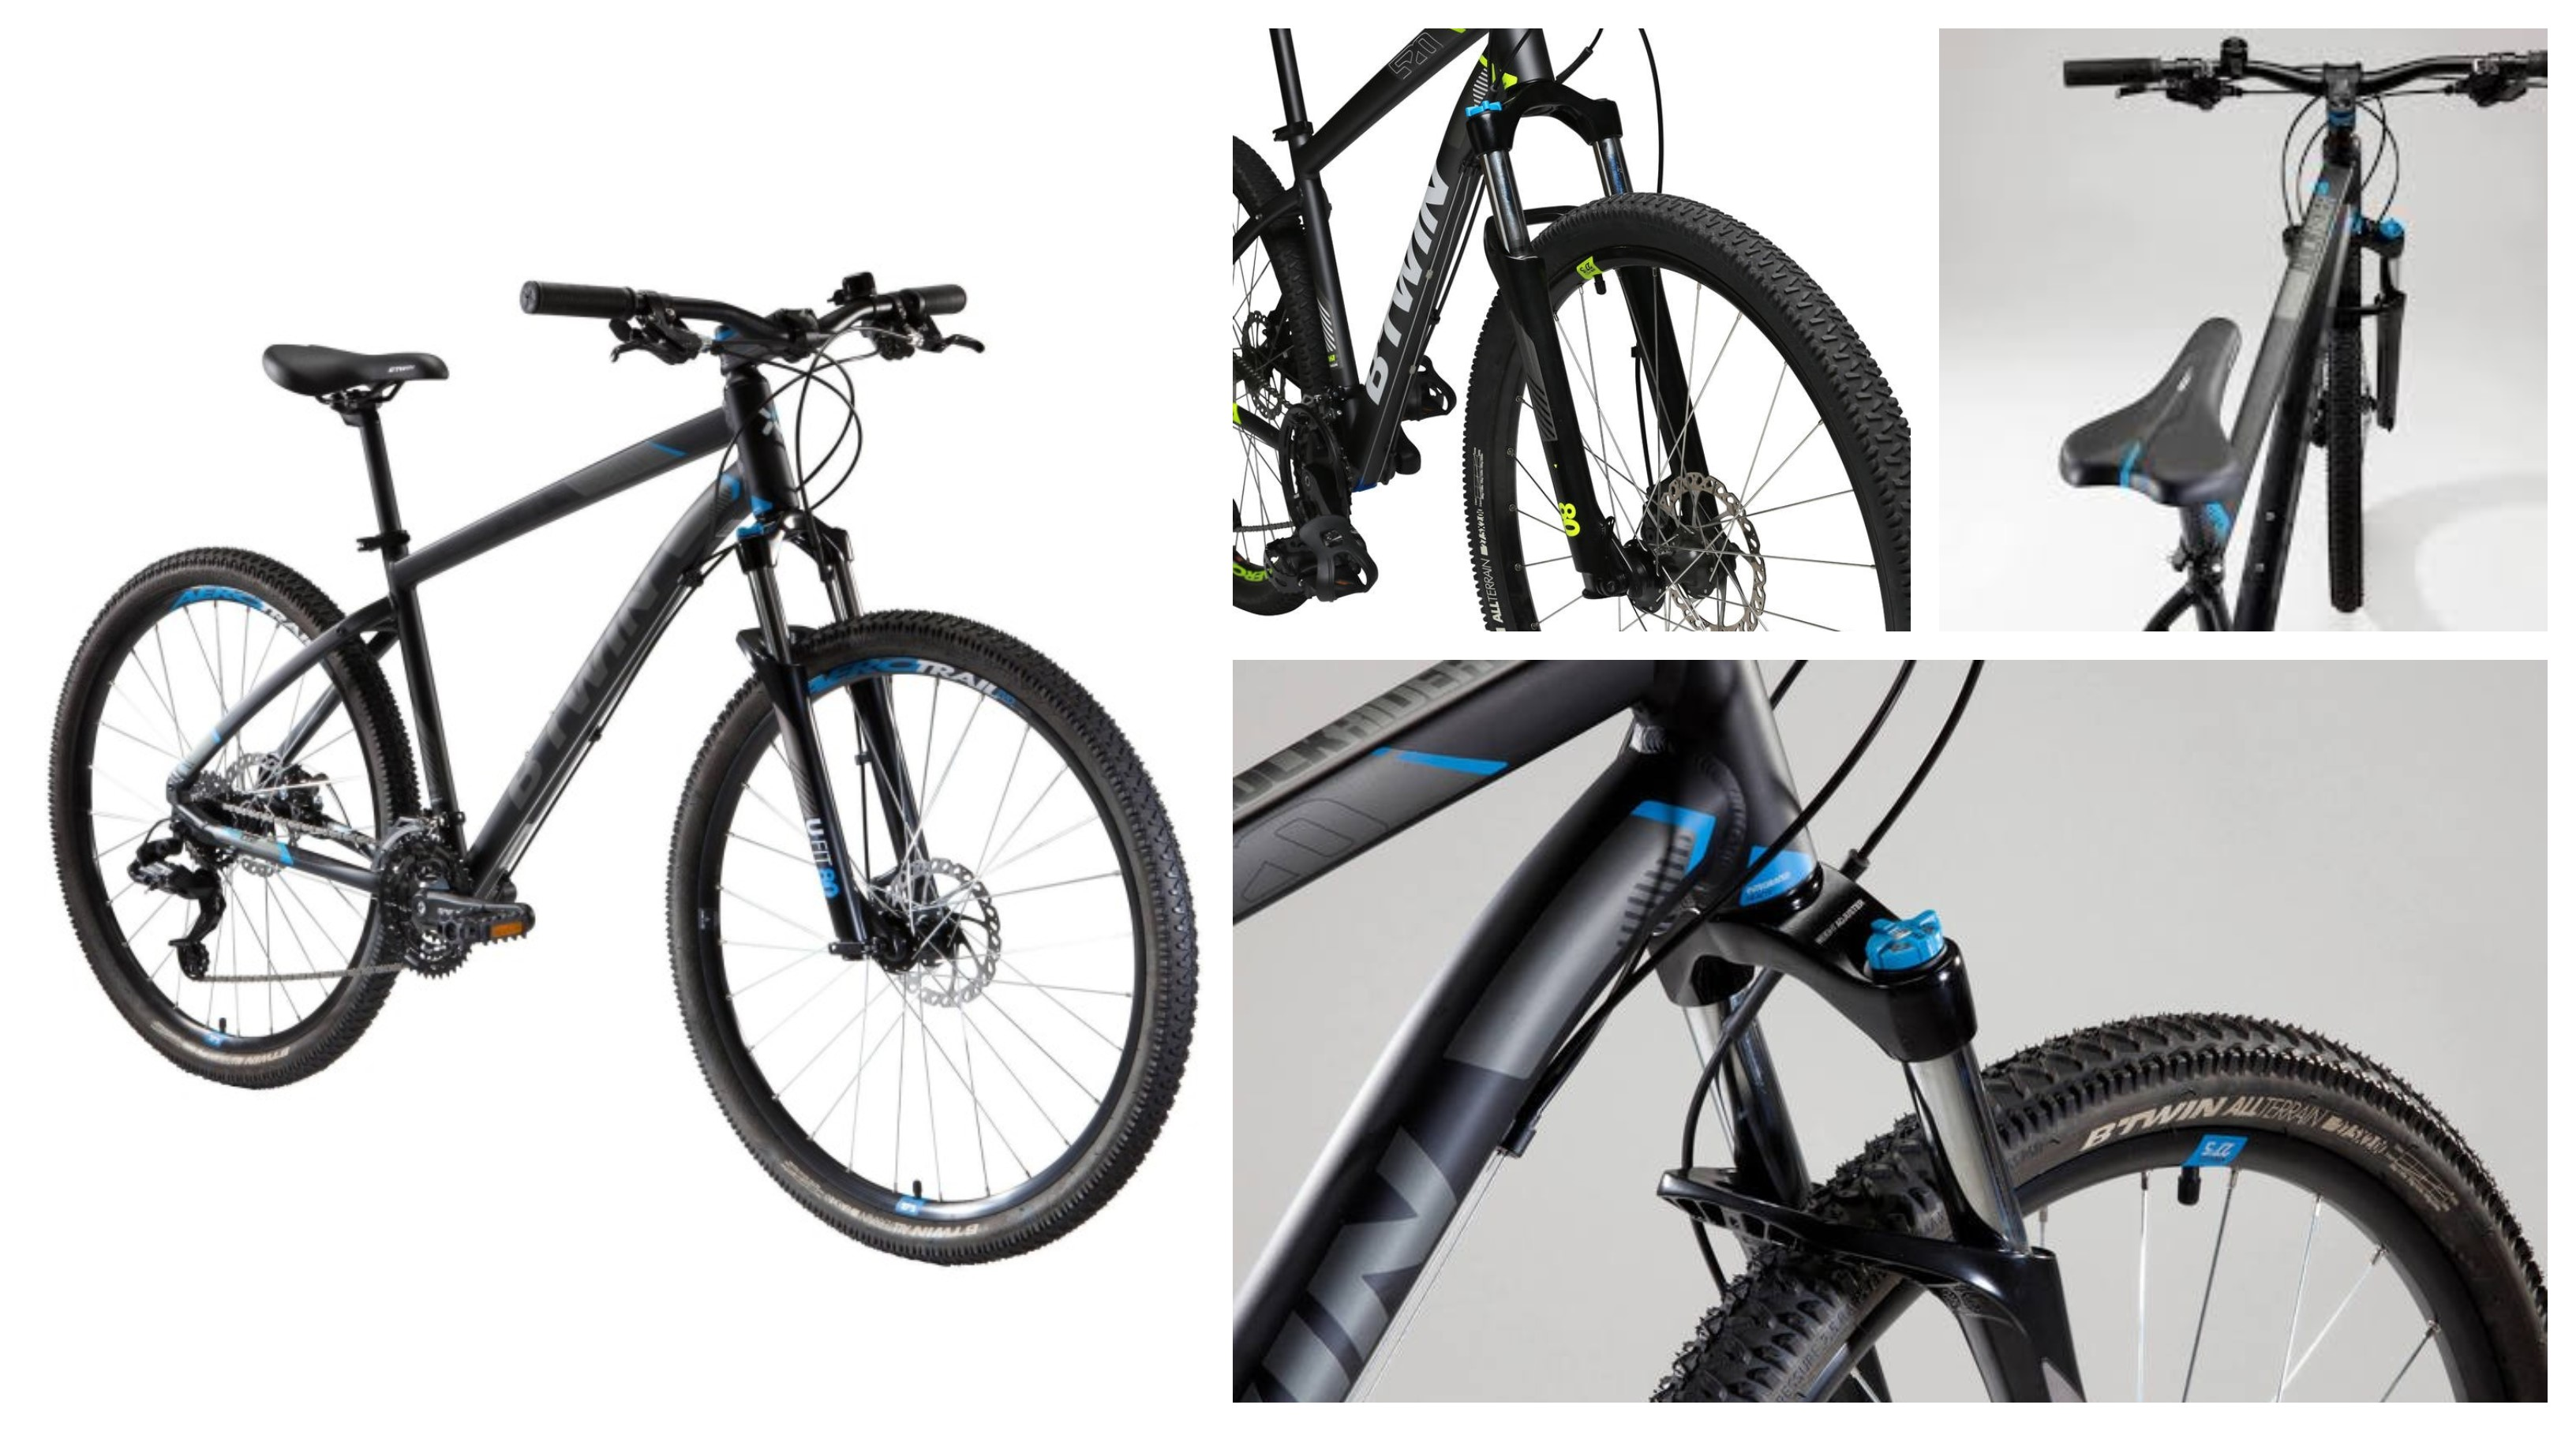 d12a65edc Review  B Twin by Decathlon s Rockrider 520 Mountain Bike - Cycling ...